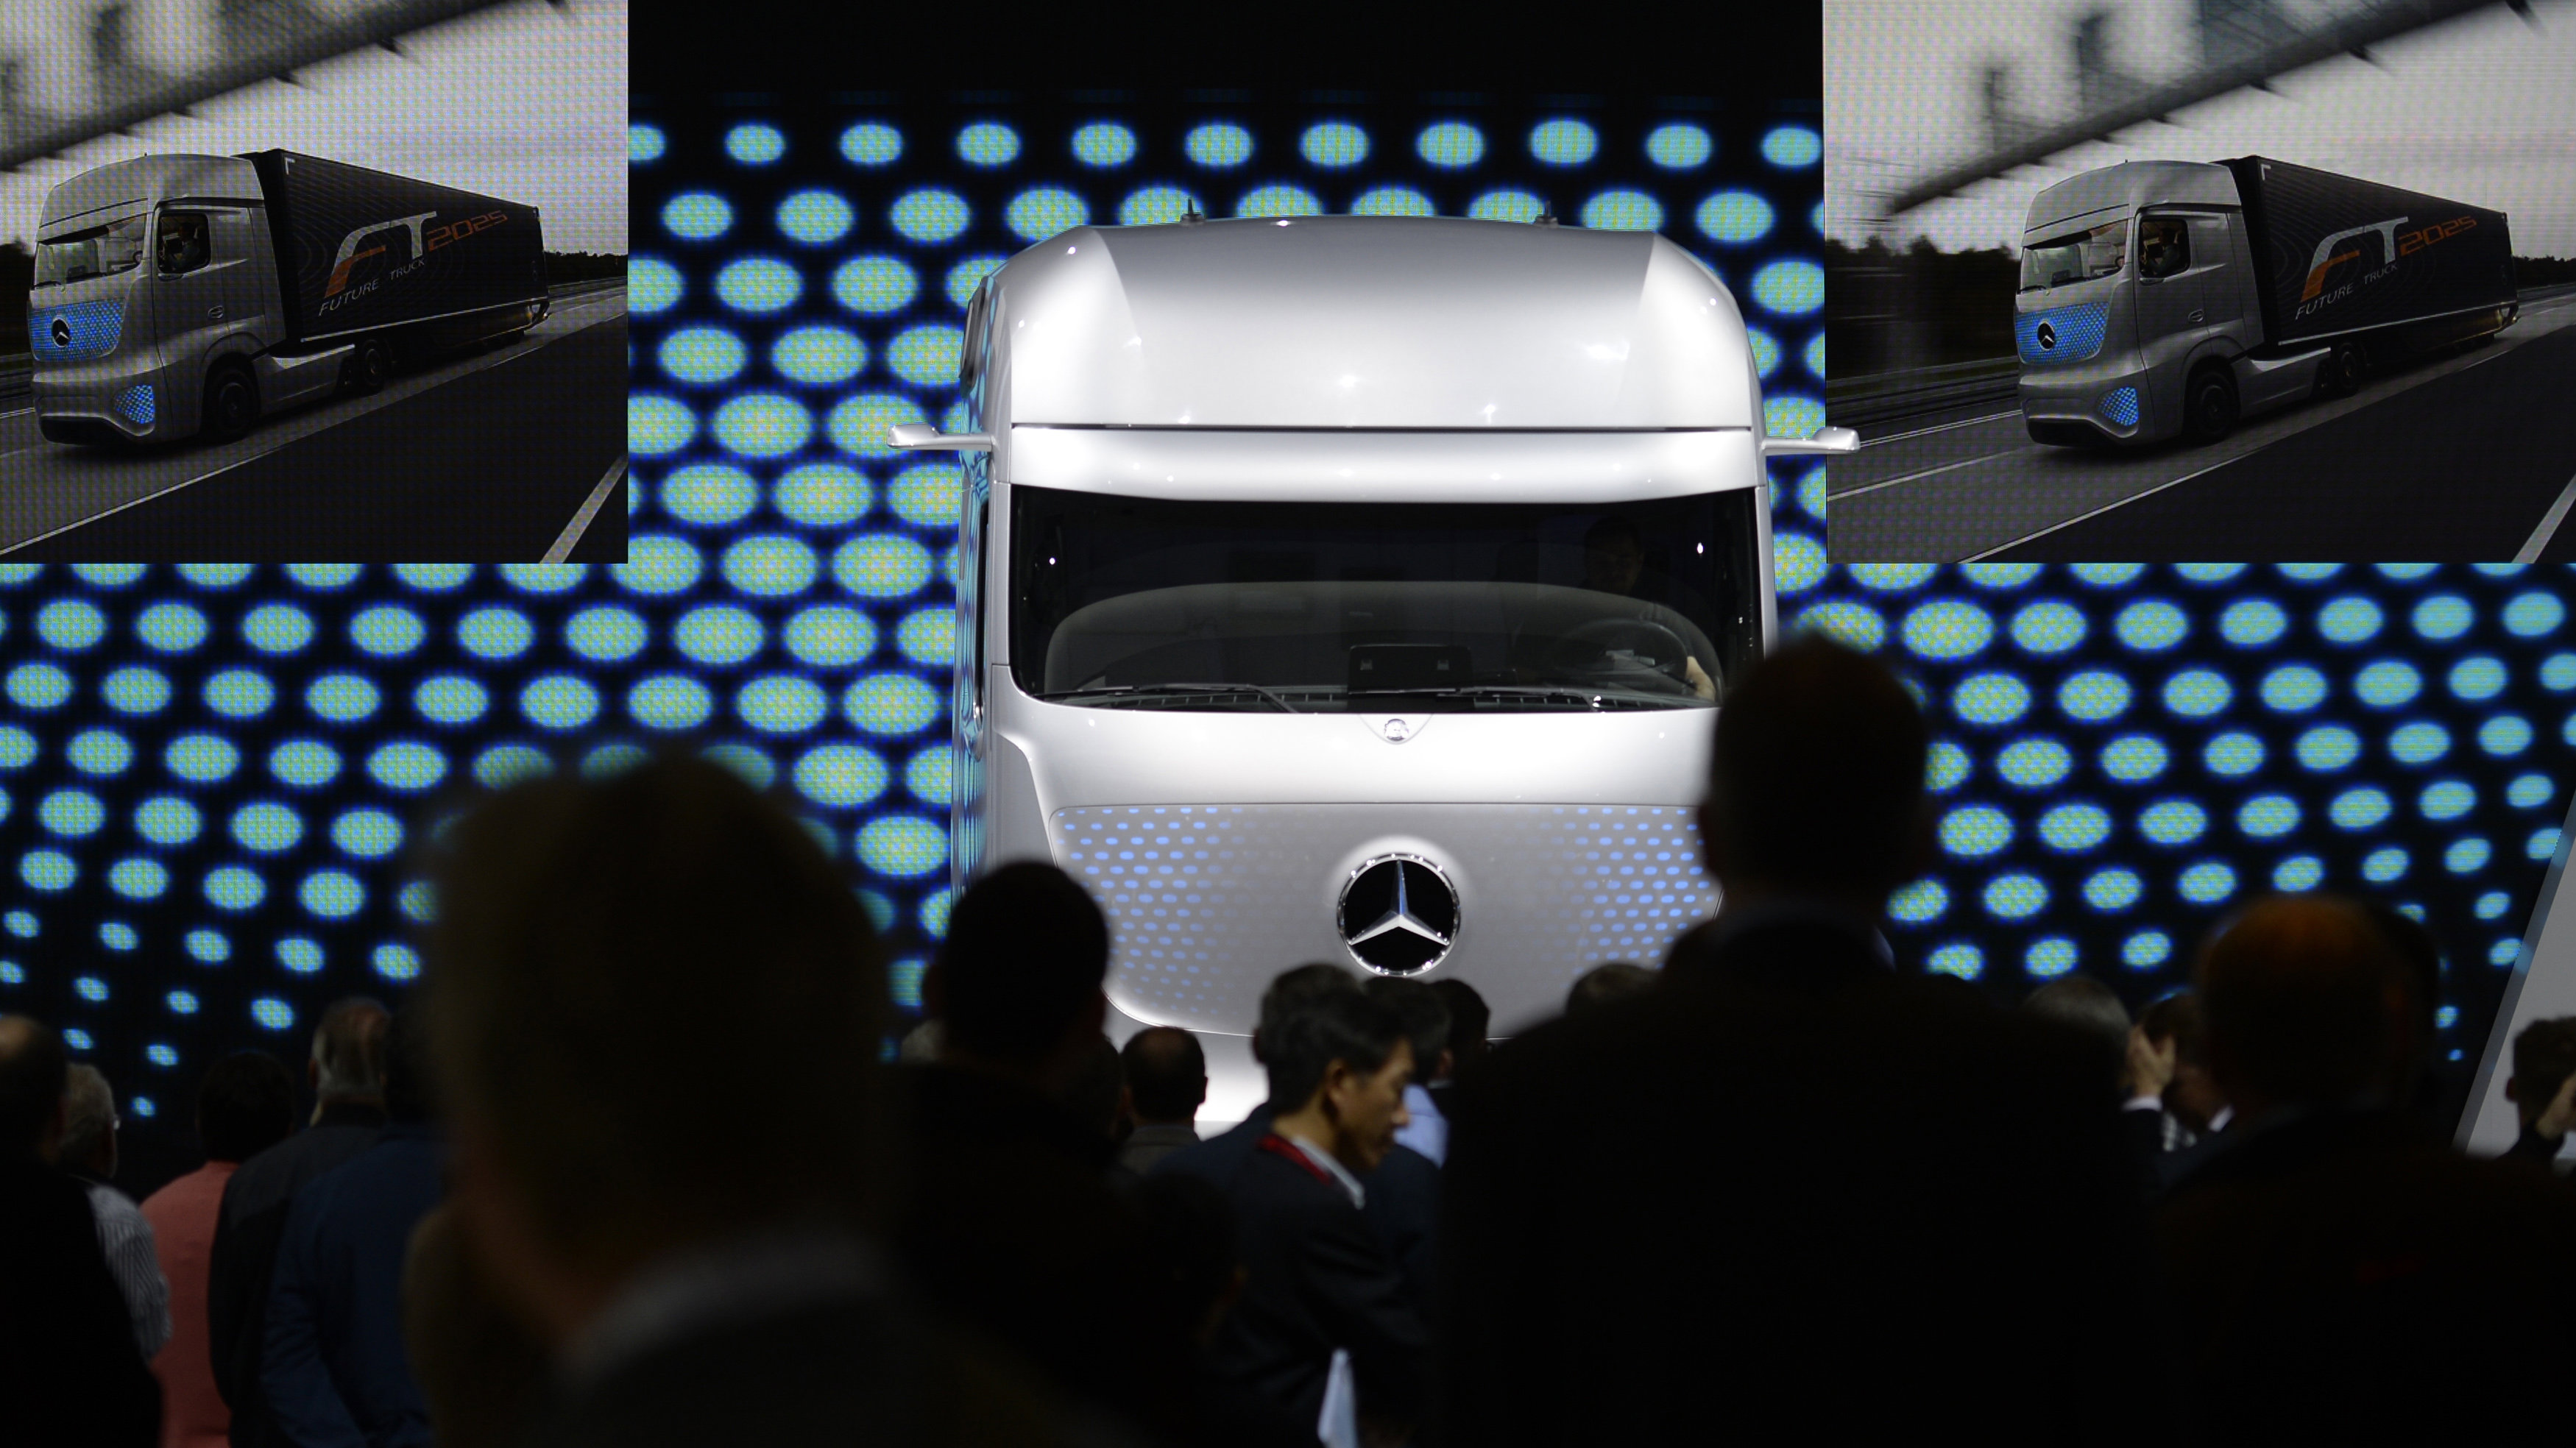 Visitors look at a concept driverless truck at the booth of German truck maker Mercedes Benz at the IAA truck show in Hanover, September 26, 2014. The IAA 2014 will run until October 2, 2014.